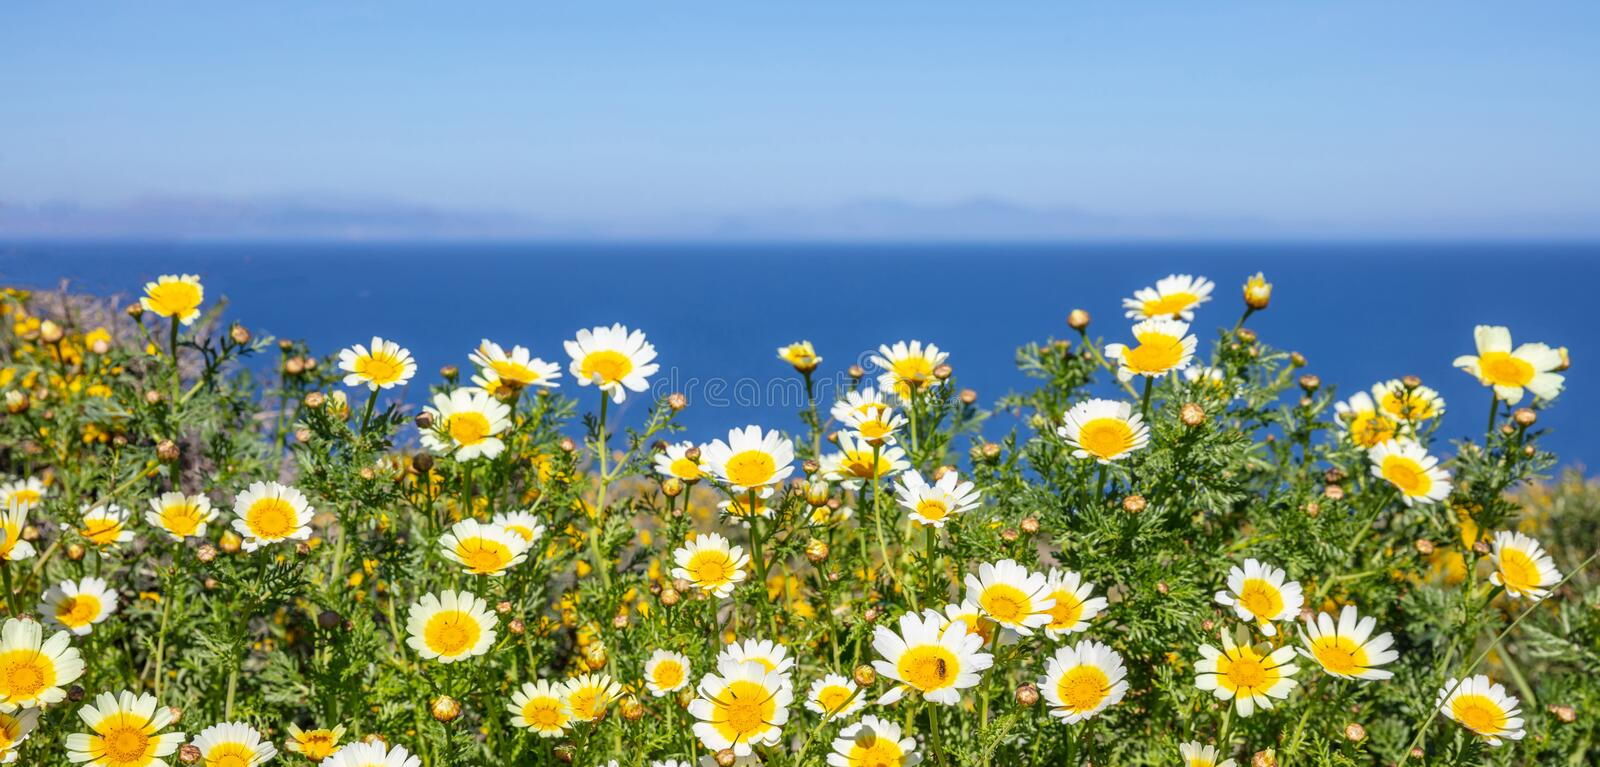 Daisies wild flowers yellow white color field, background royalty free stock images